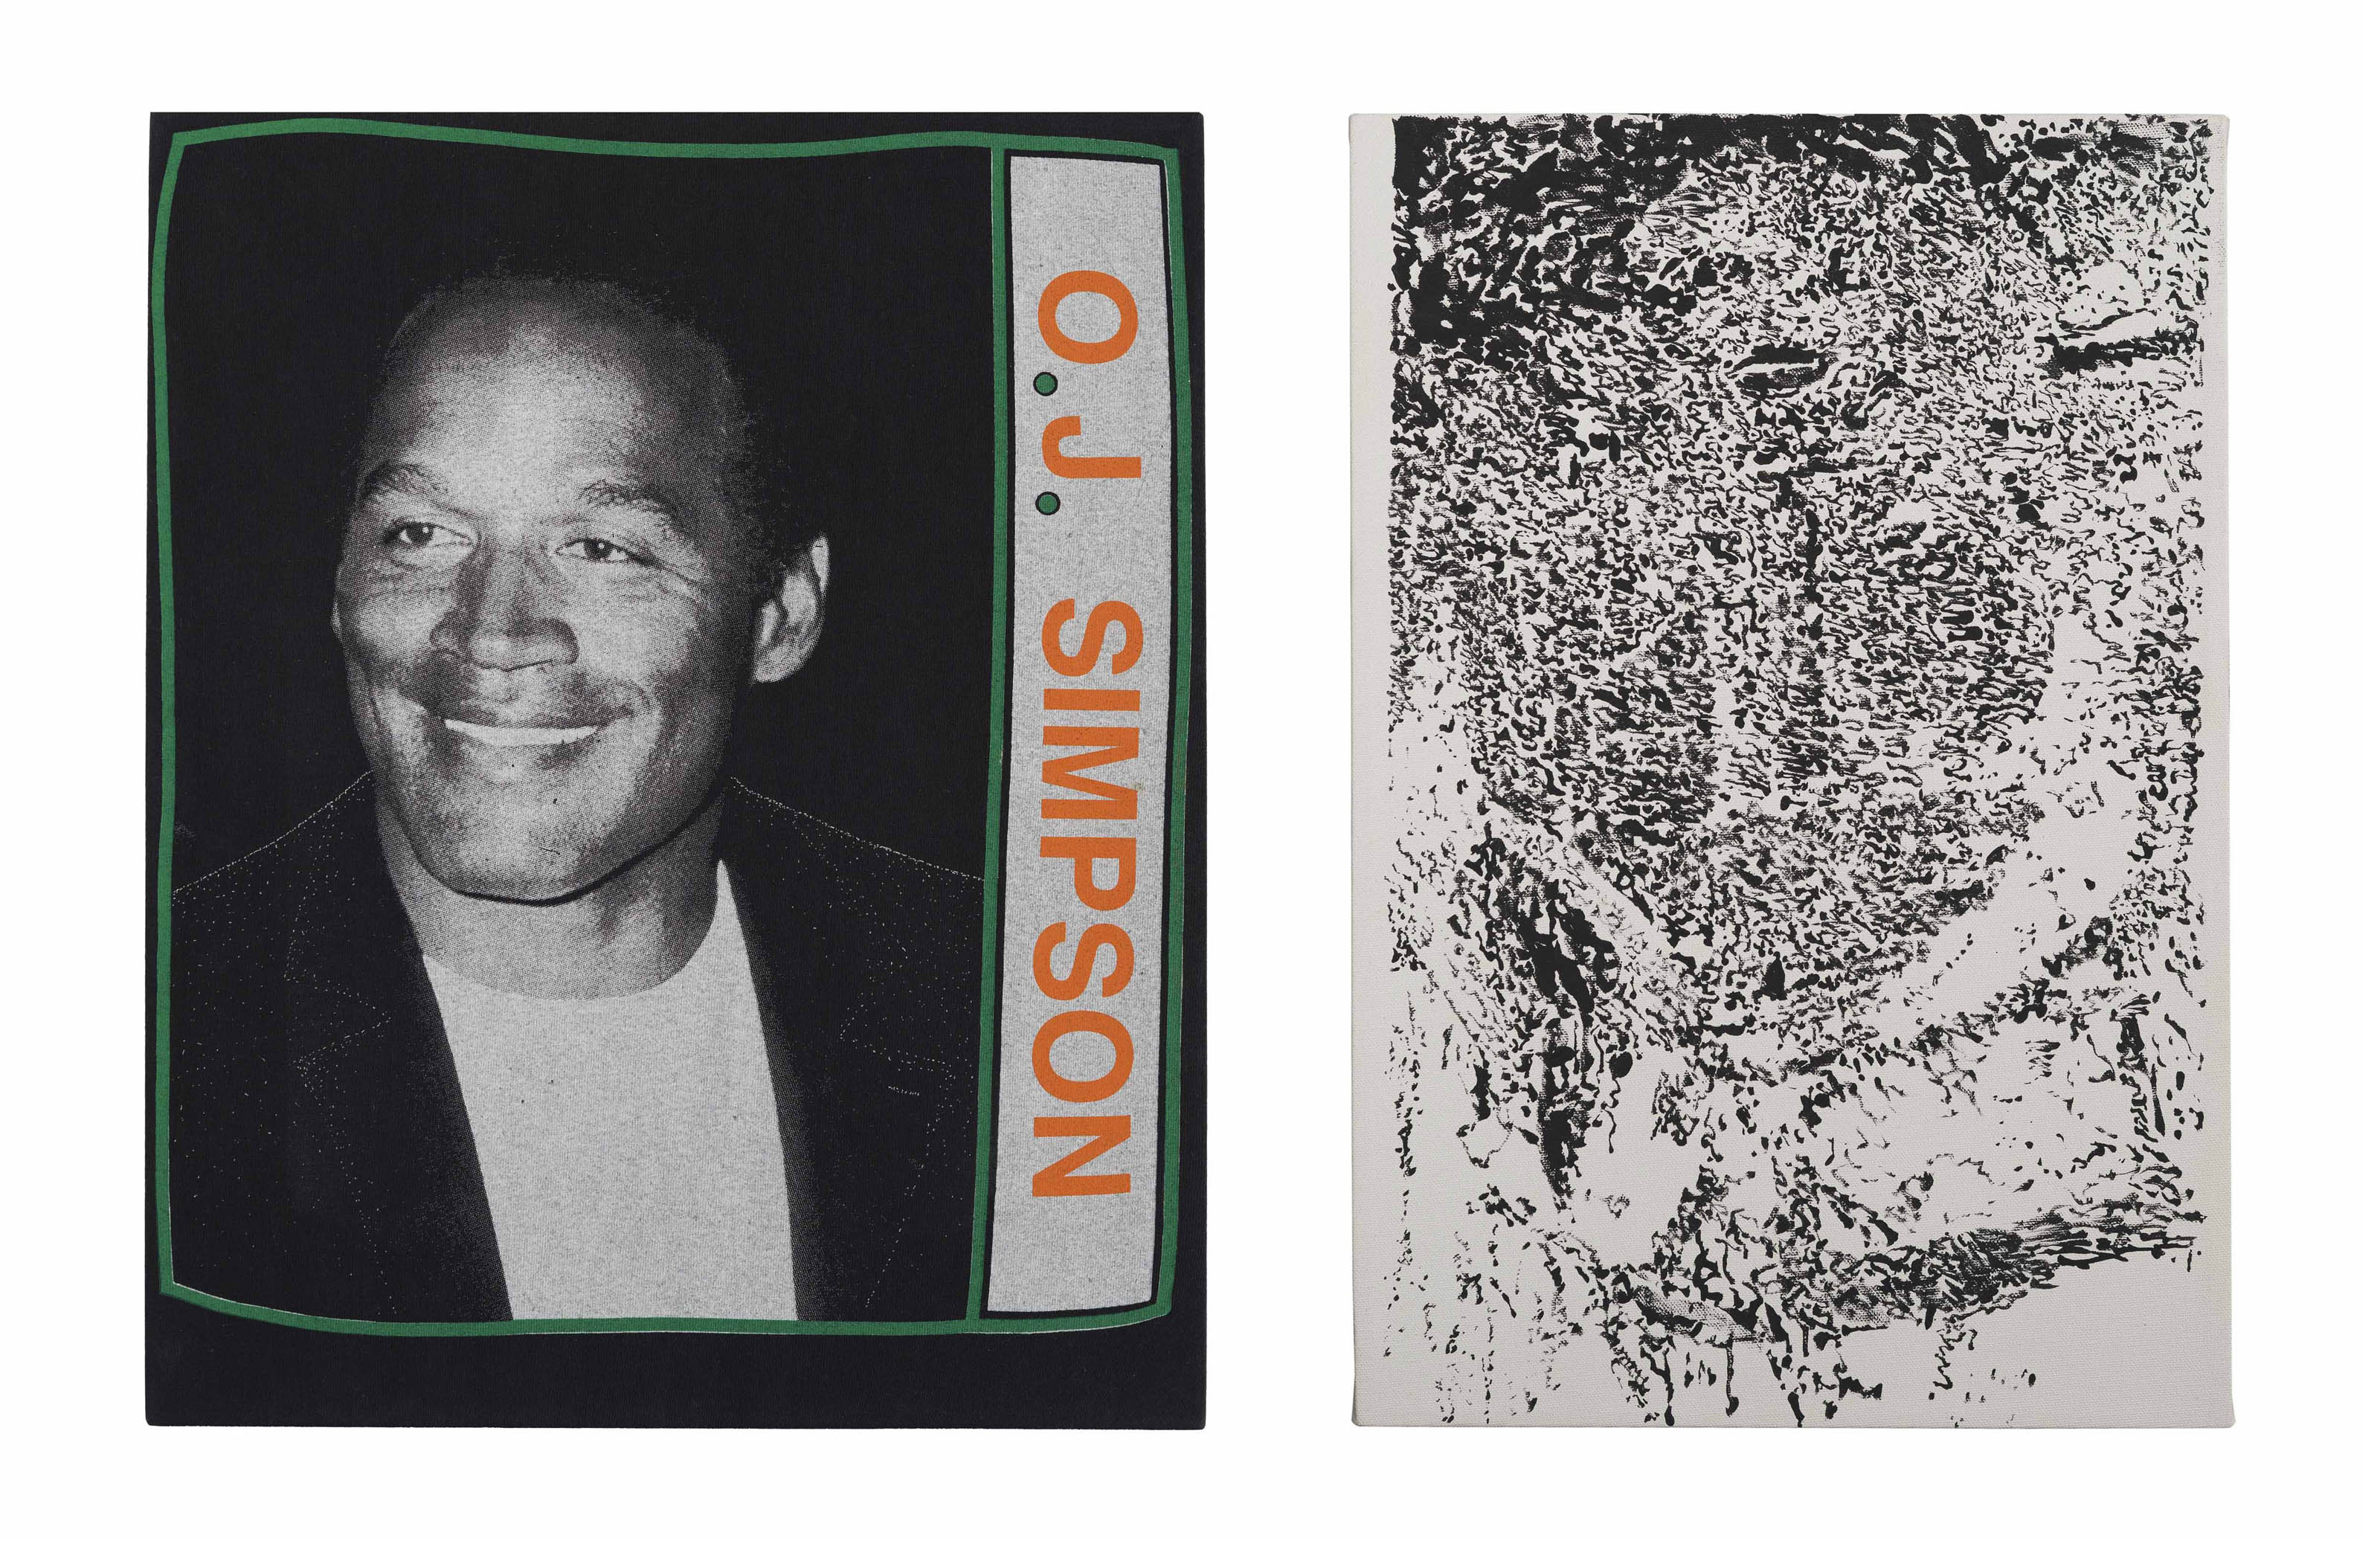 Anger Management Diptych (Juice and De Kooning's Marylin)